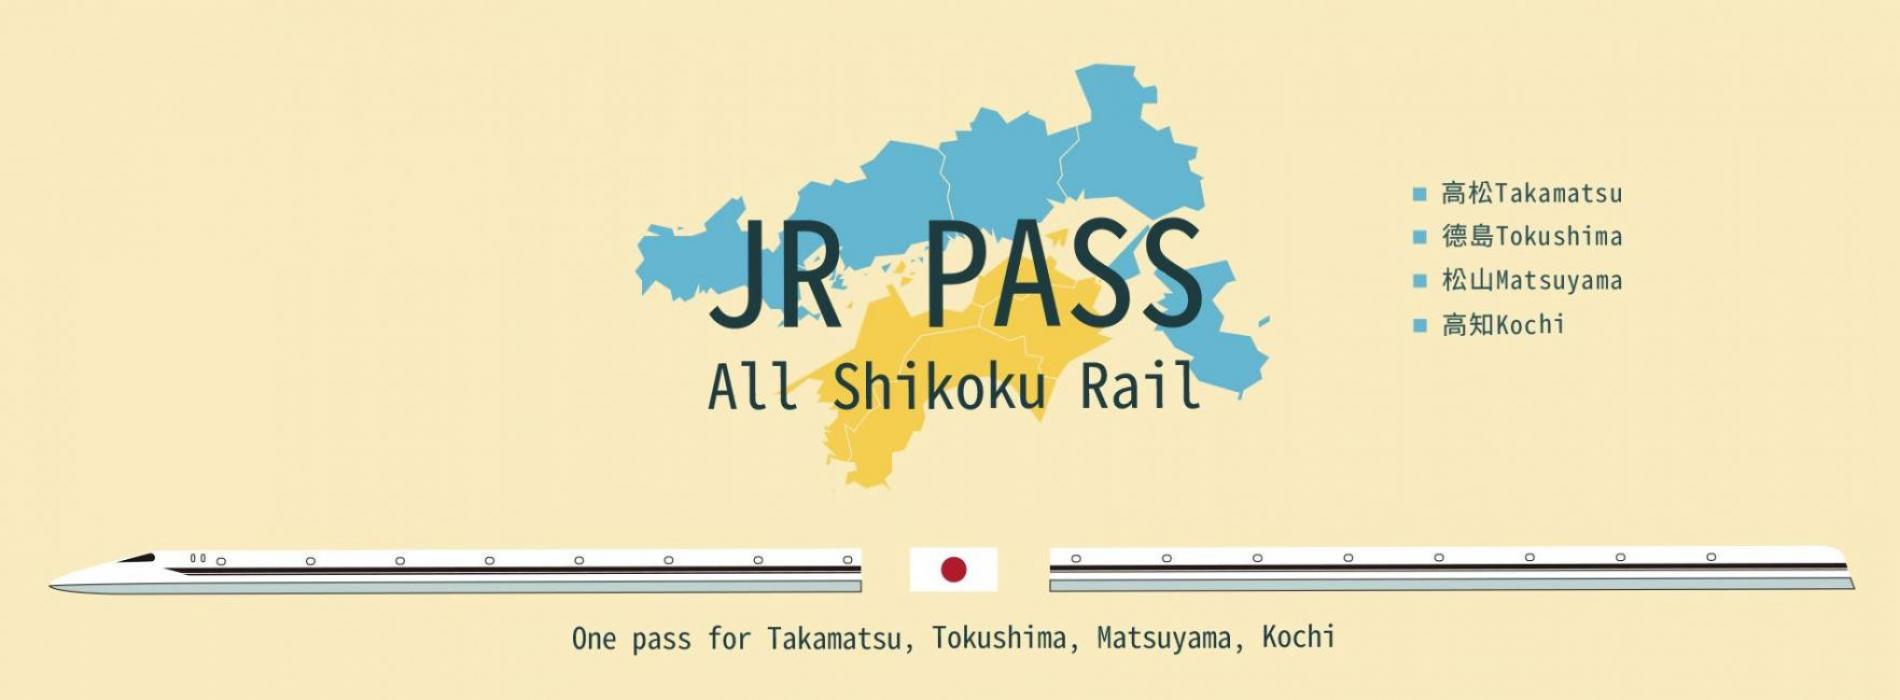 Snap Jr Passjapan Rail Pass Kkdaycom Photos On Pinterest Jrpass Ordinary Dewasa 7hari Japan Philippines Postal Delivery Tripzeeker